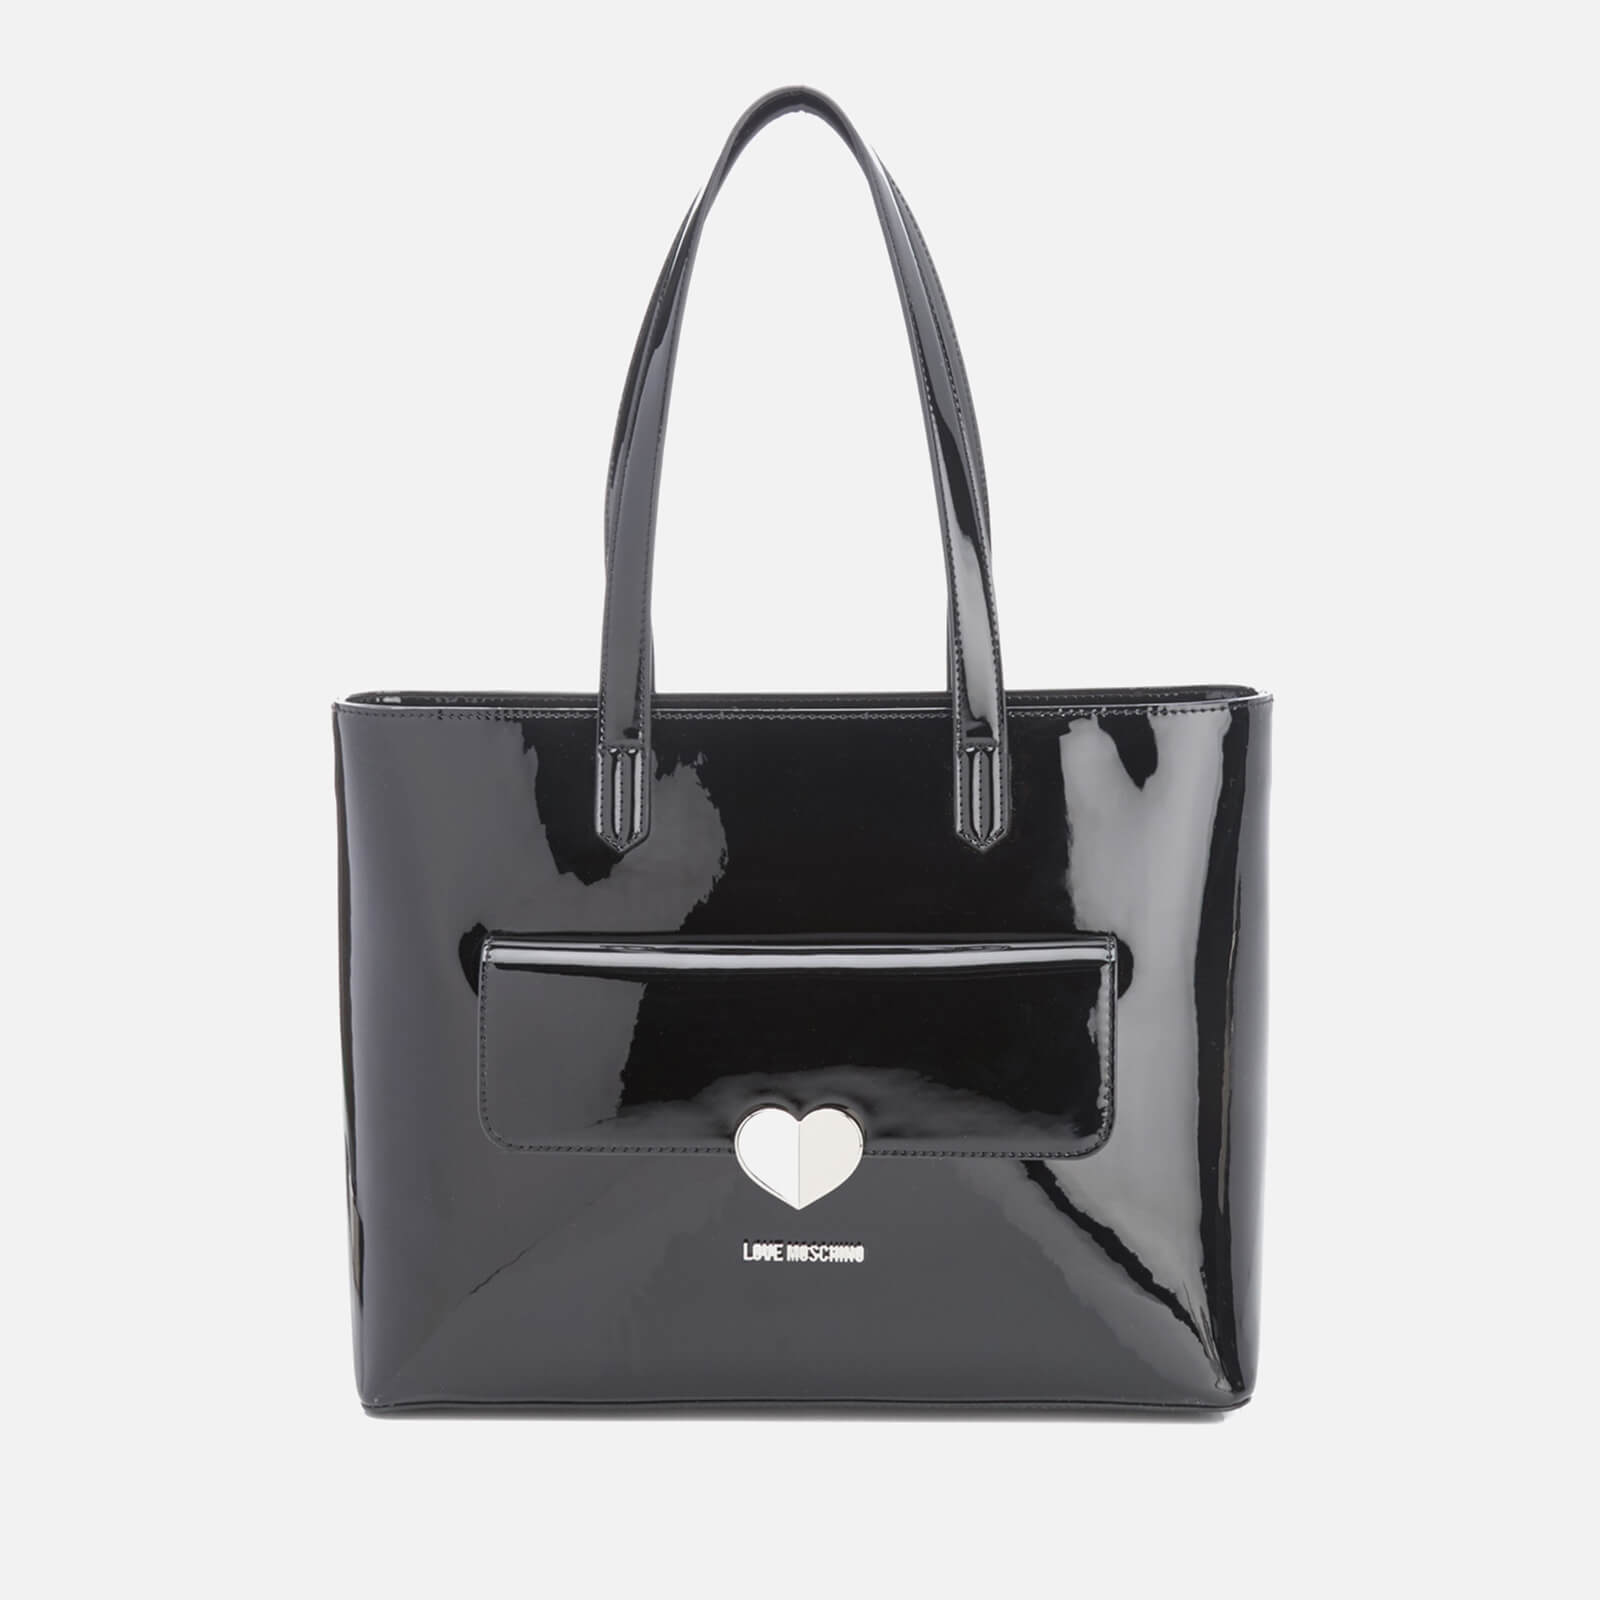 53081342b71 Love Moschino Women's Love Tote Heart Bag - Black - Free UK Delivery over  £50